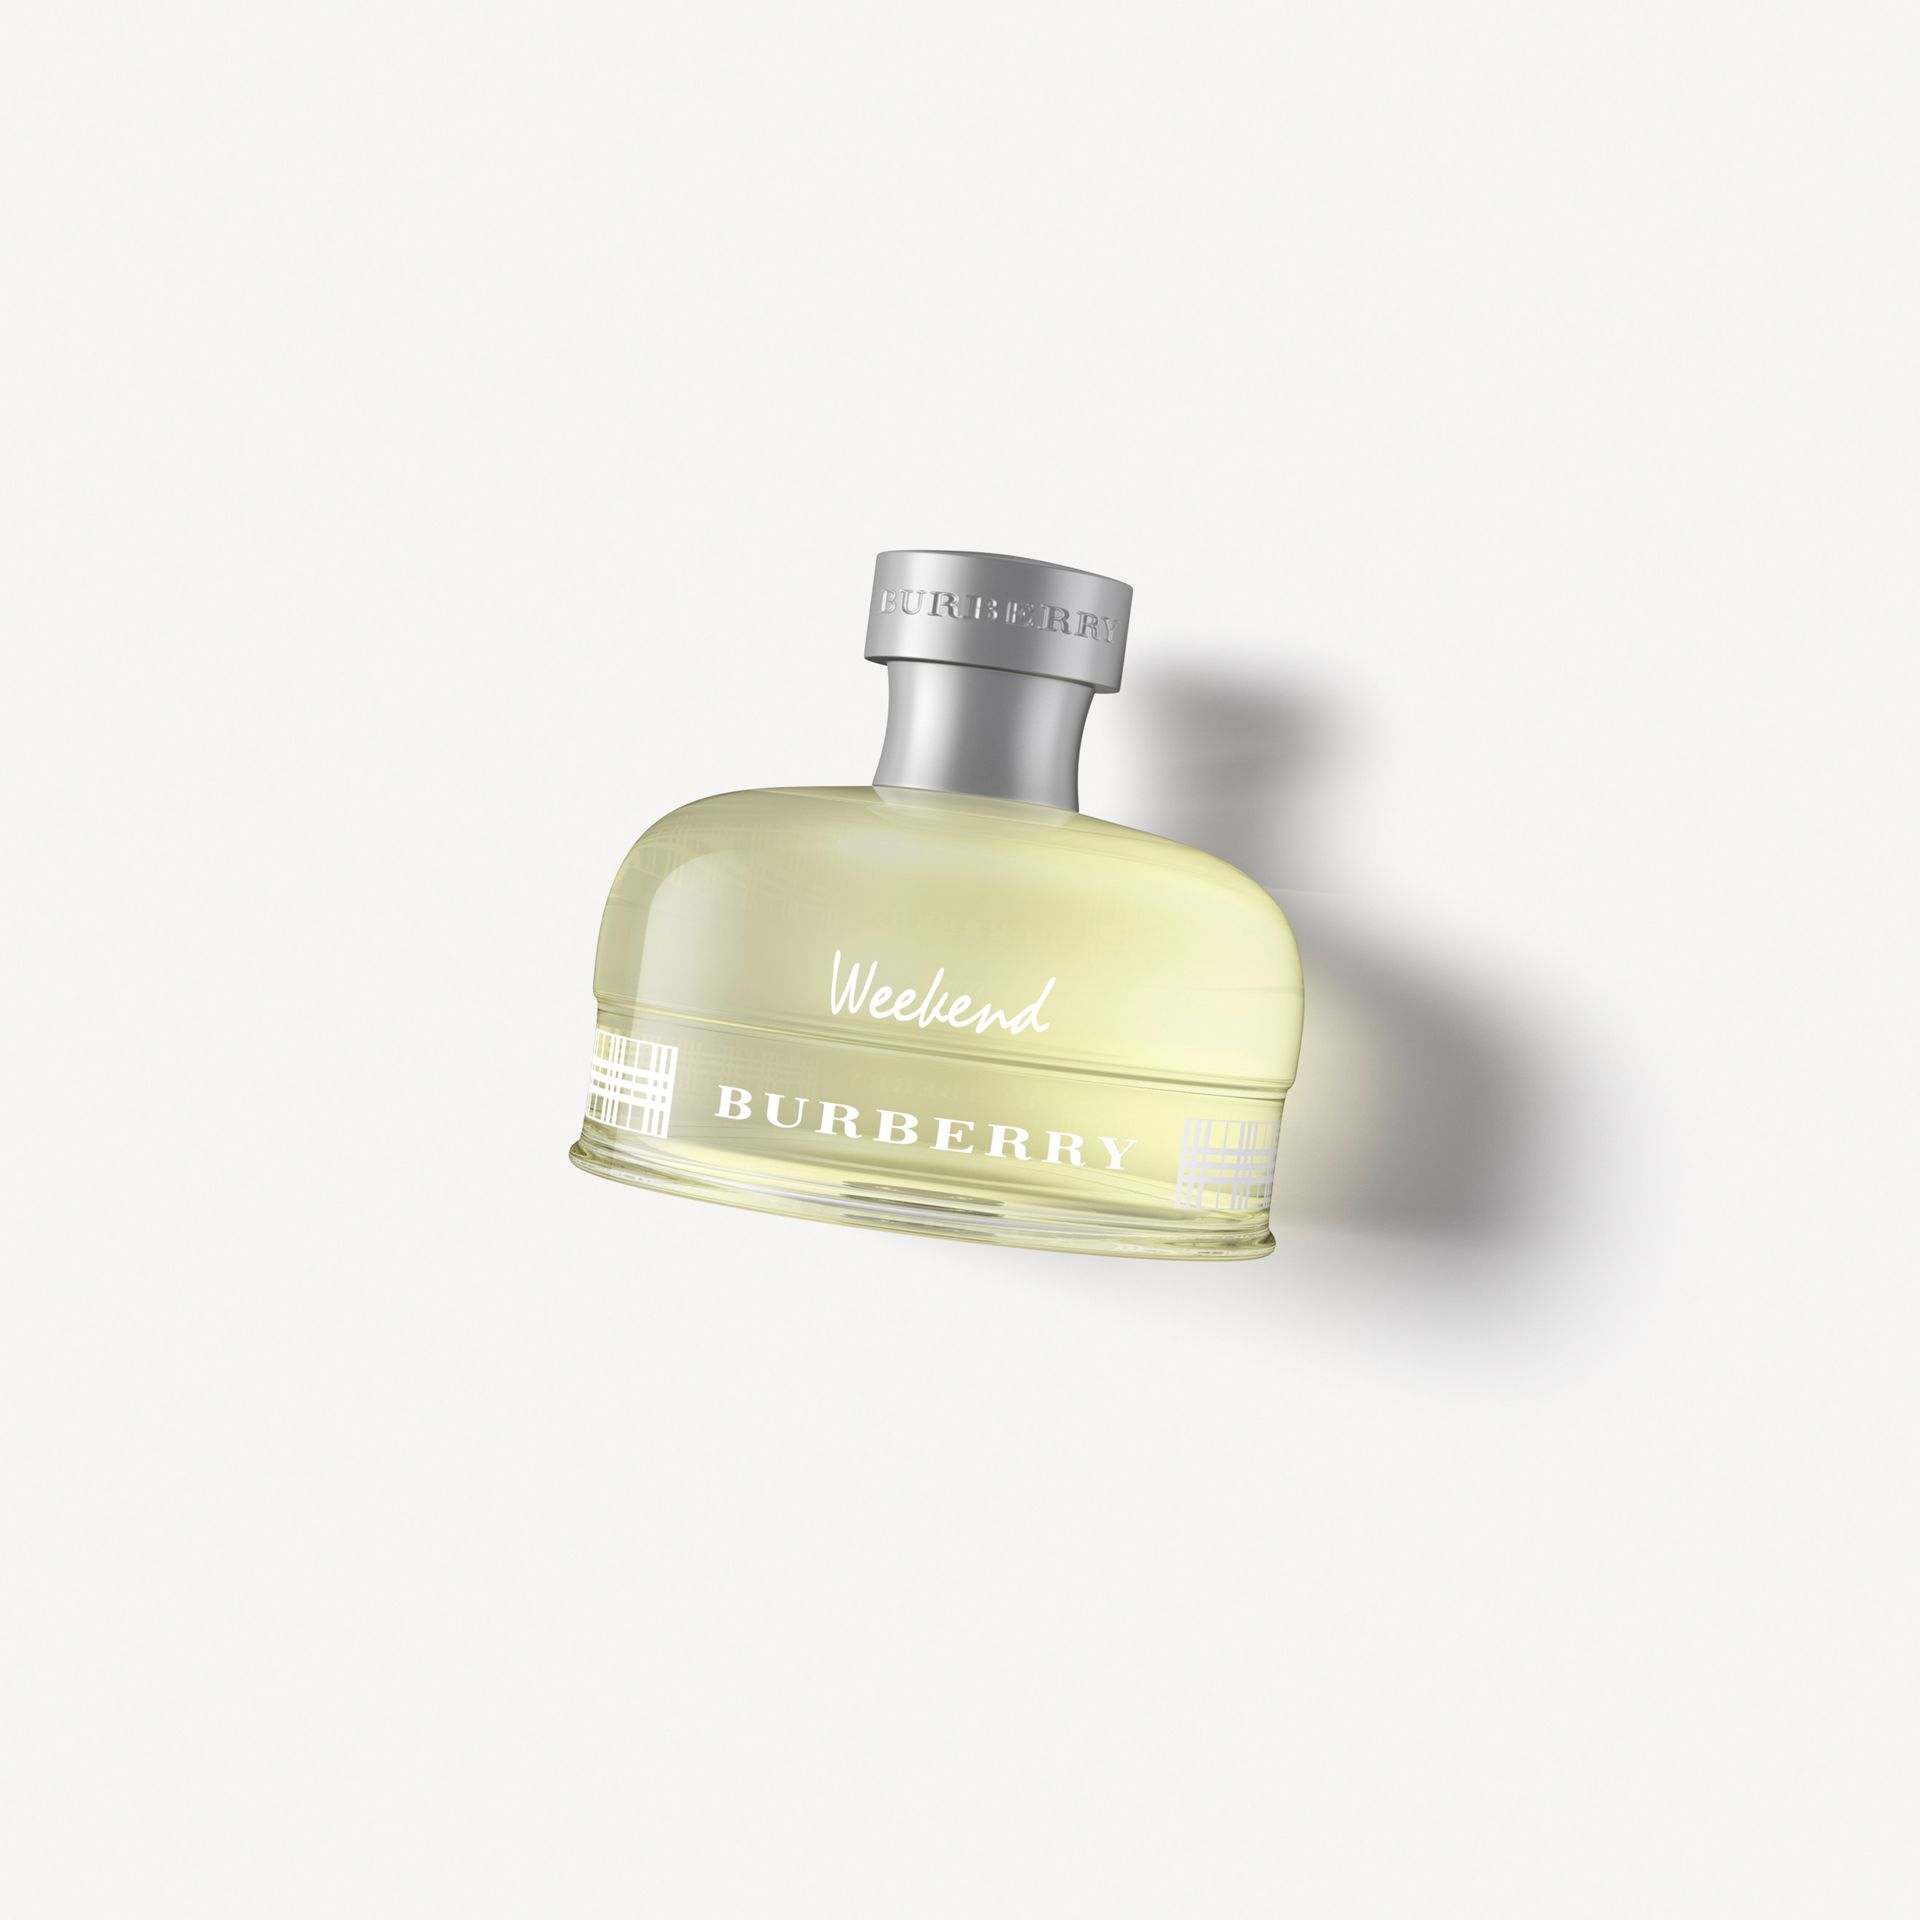 Burberry Weekend Eau de Parfum 100ml - Women | Burberry United States - gallery image 0